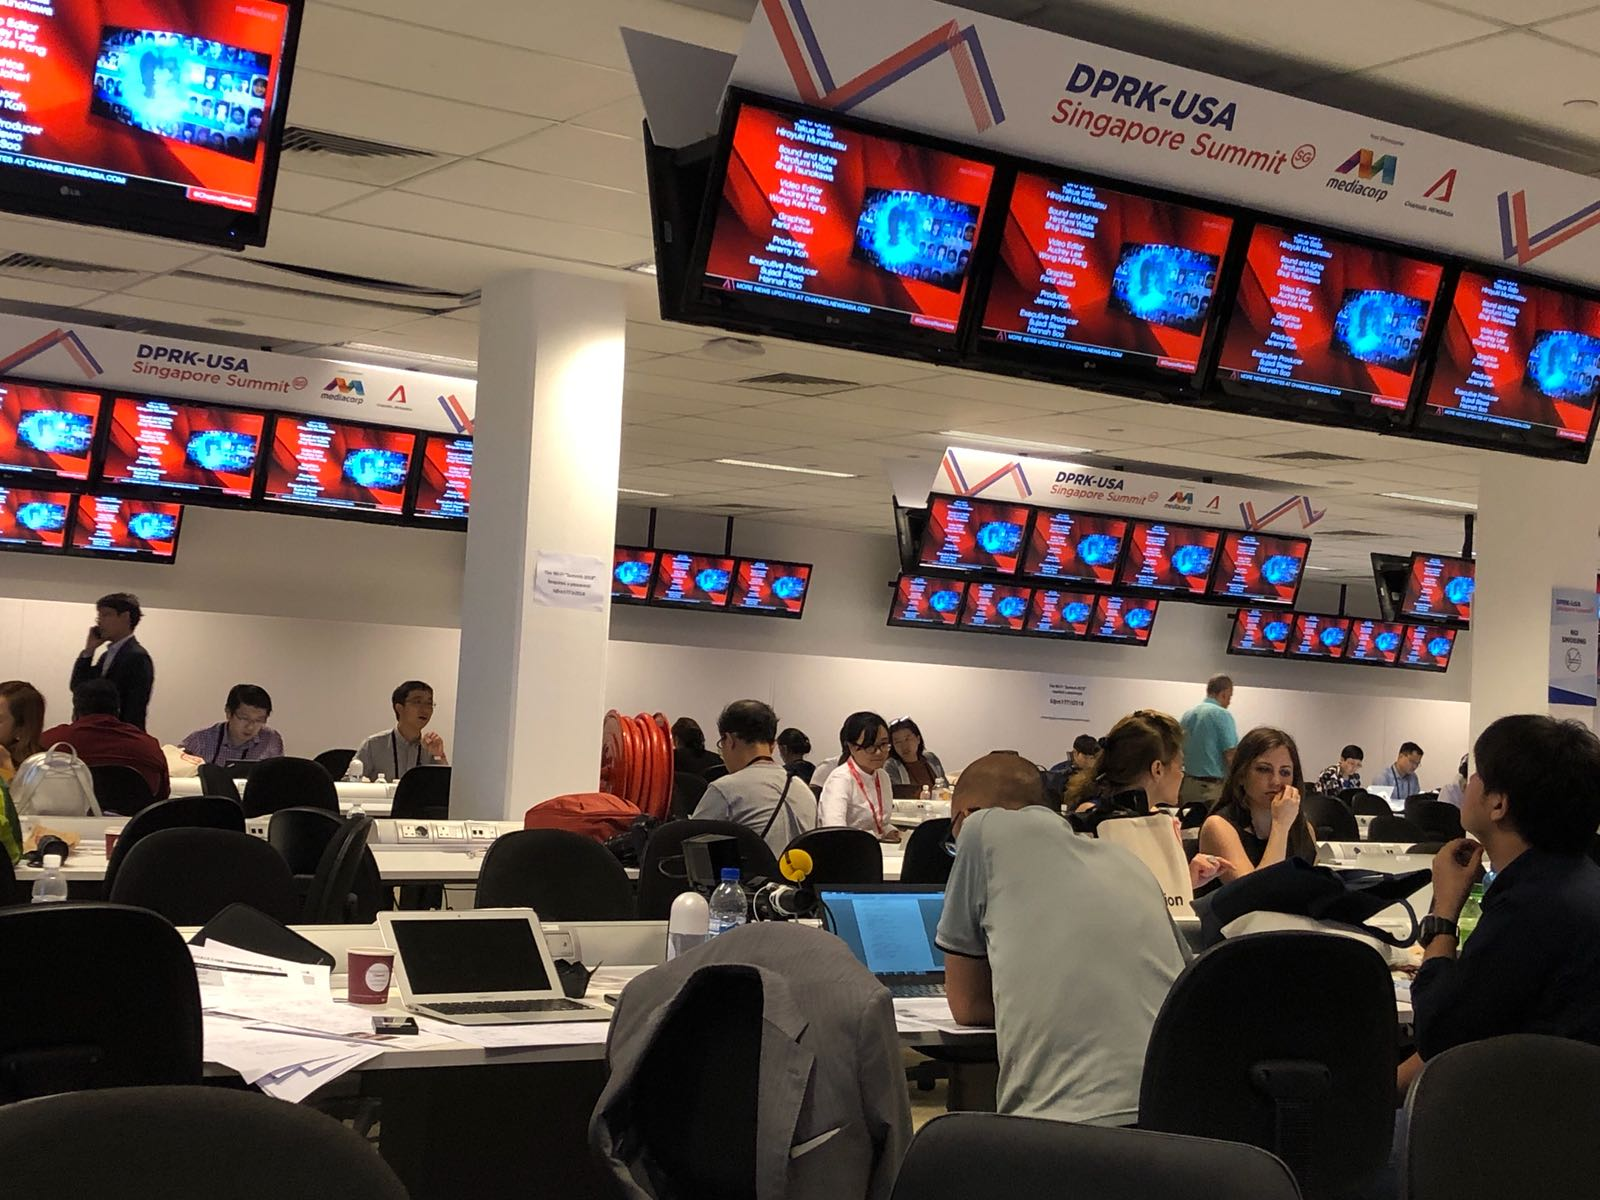 Over 2,500 journalists from all over the world have converged in Singapore to bring live updates on Trump-Kim summit meeting.